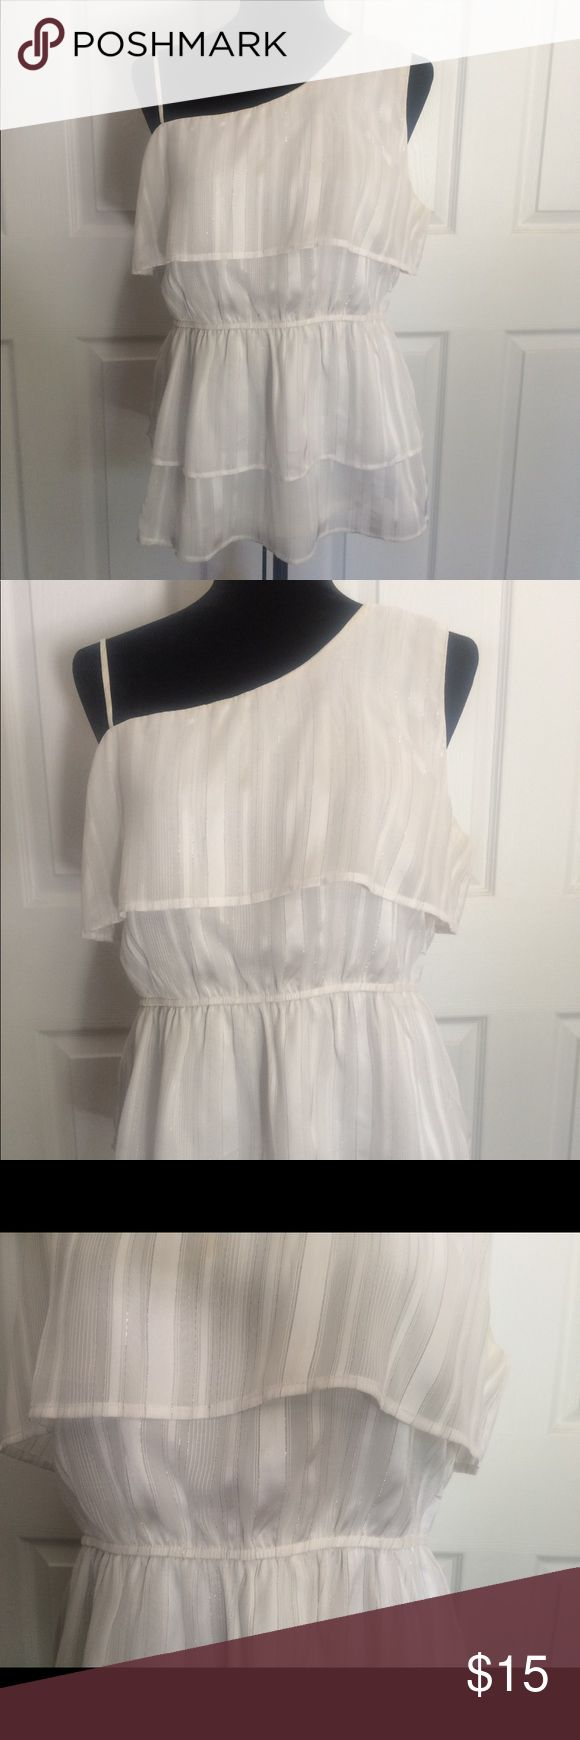 Women's White and silver blouse.  Size large. Studio Y women's white with silver stripes blouse.  Very pretty and I'm good condition!  Size large.  100% polyester. Studio Y Tops Blouses